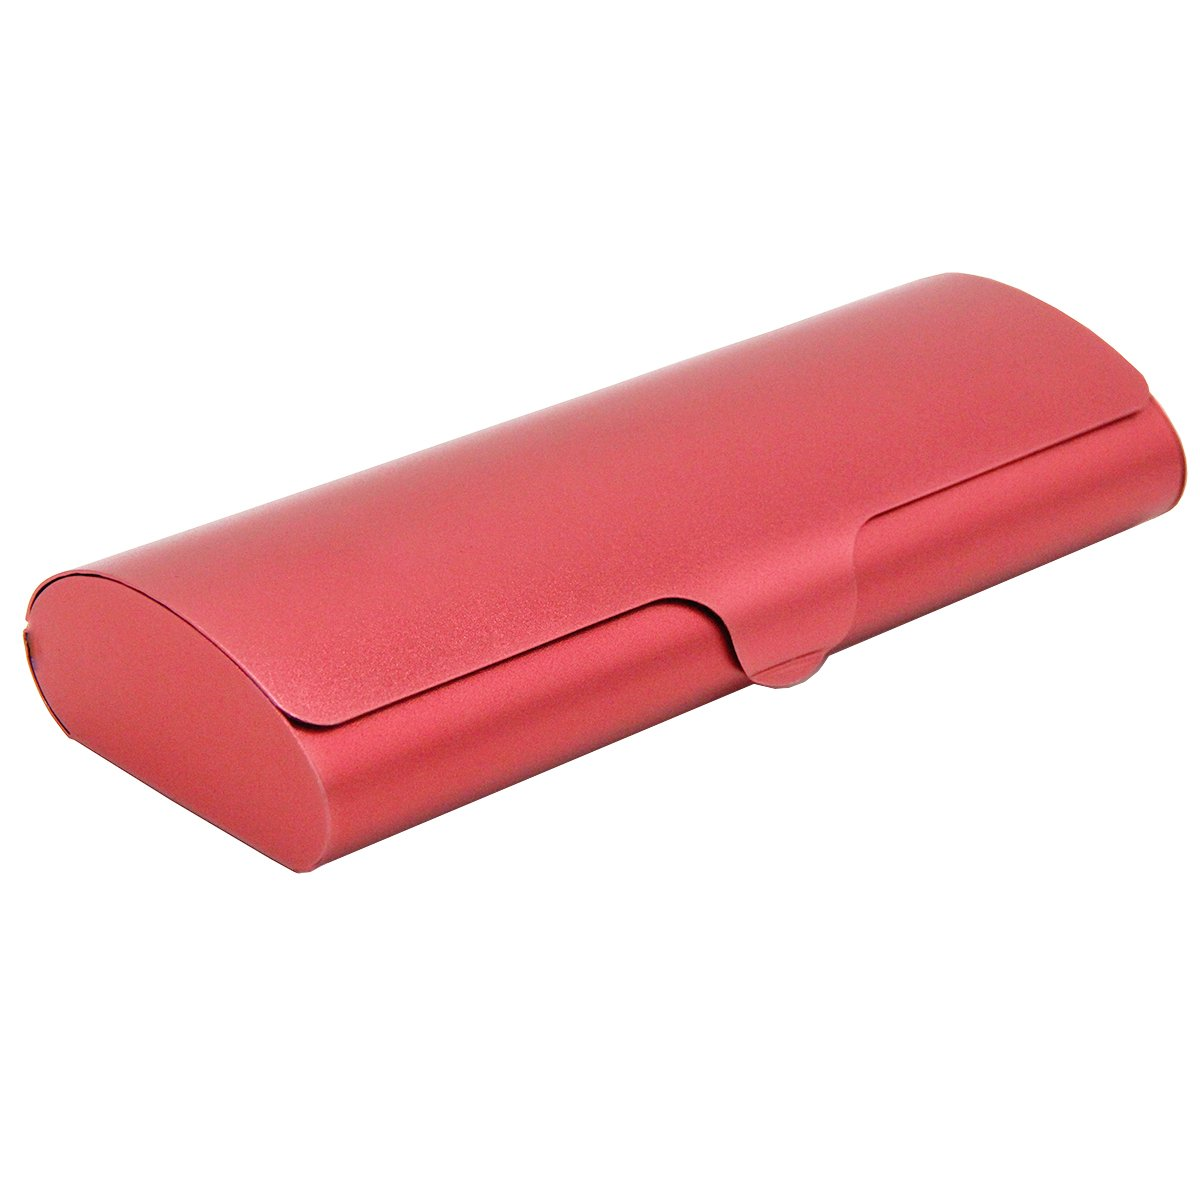 ZZ Sanity Slim Aluminium Lightweight Glasses Eyeglasses Case Spectacles (Red) ZZ Sanity Co. ltd